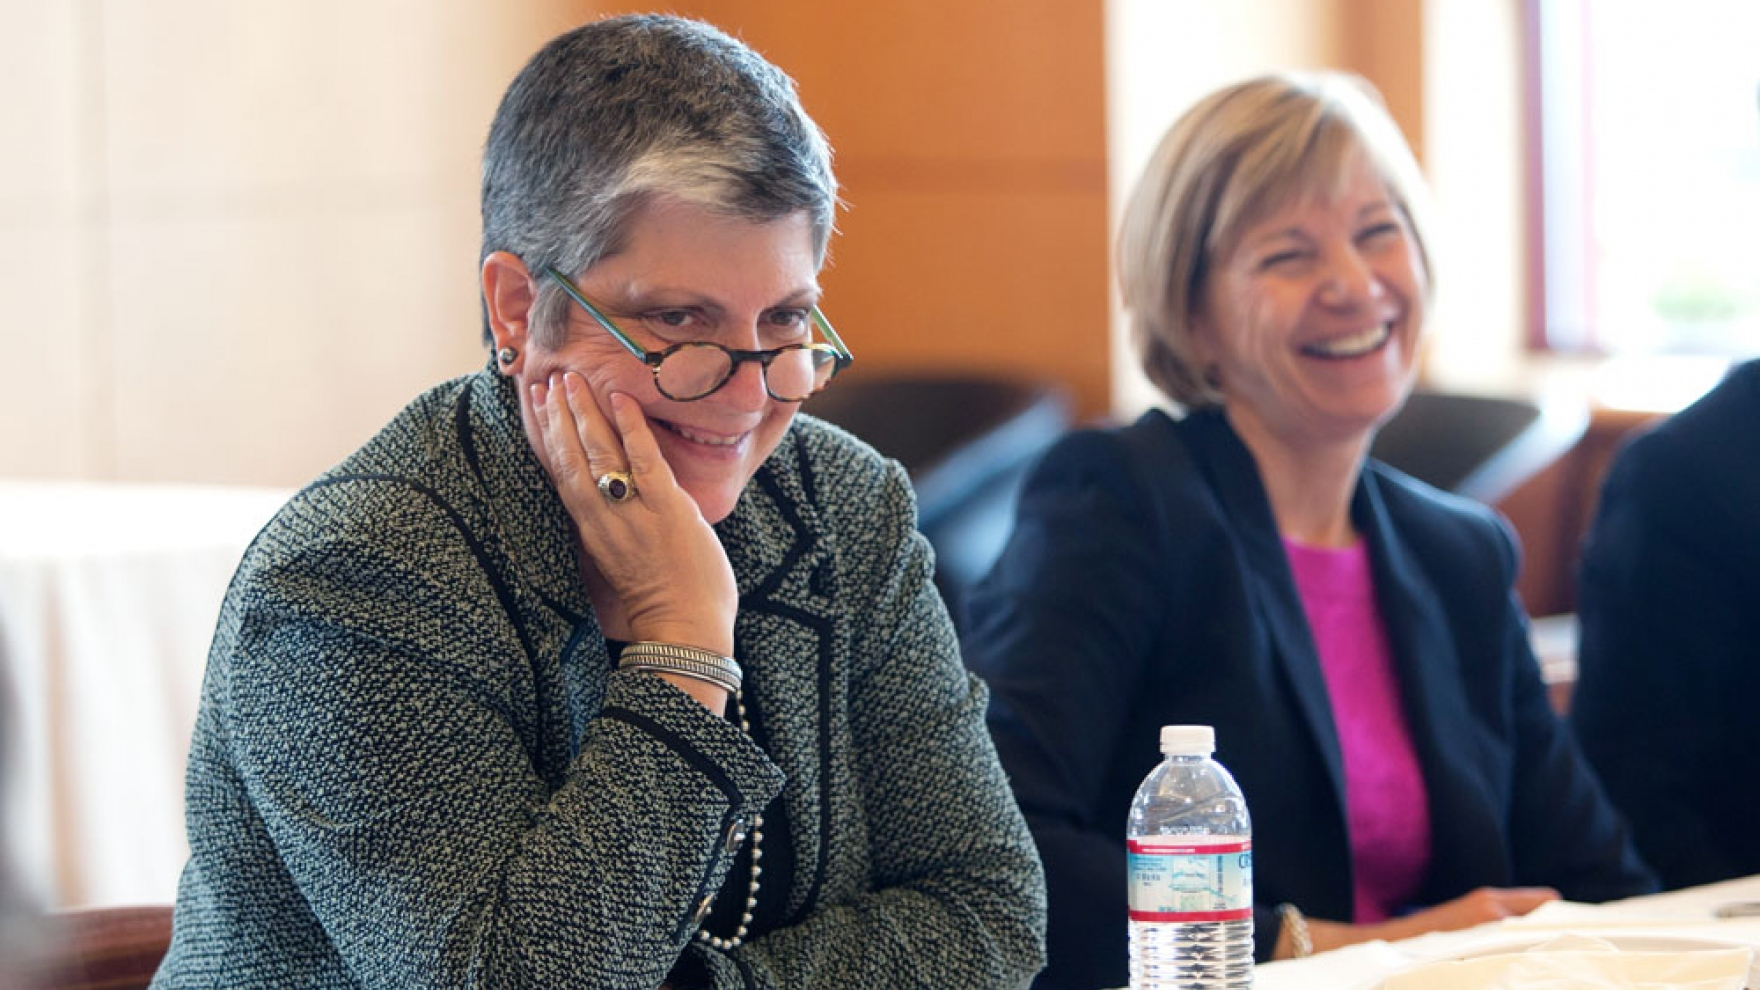 New UC President Visits UCSF to Listen and Learn